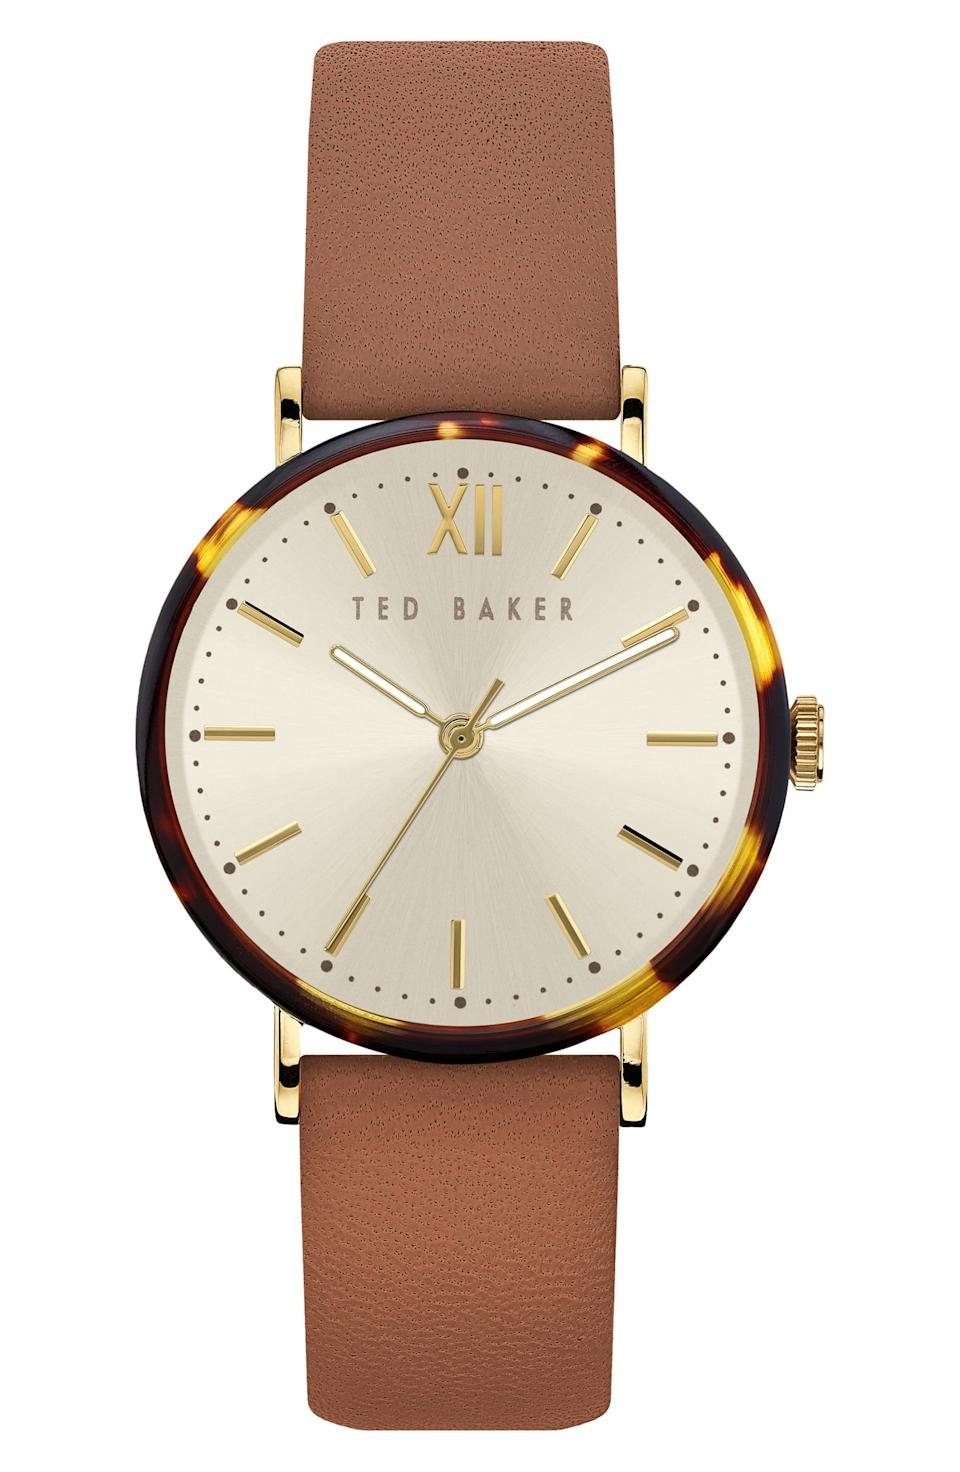 Ted Baker Phylipa Leather Strap Watch, 37mm. Image via Nordstrom.